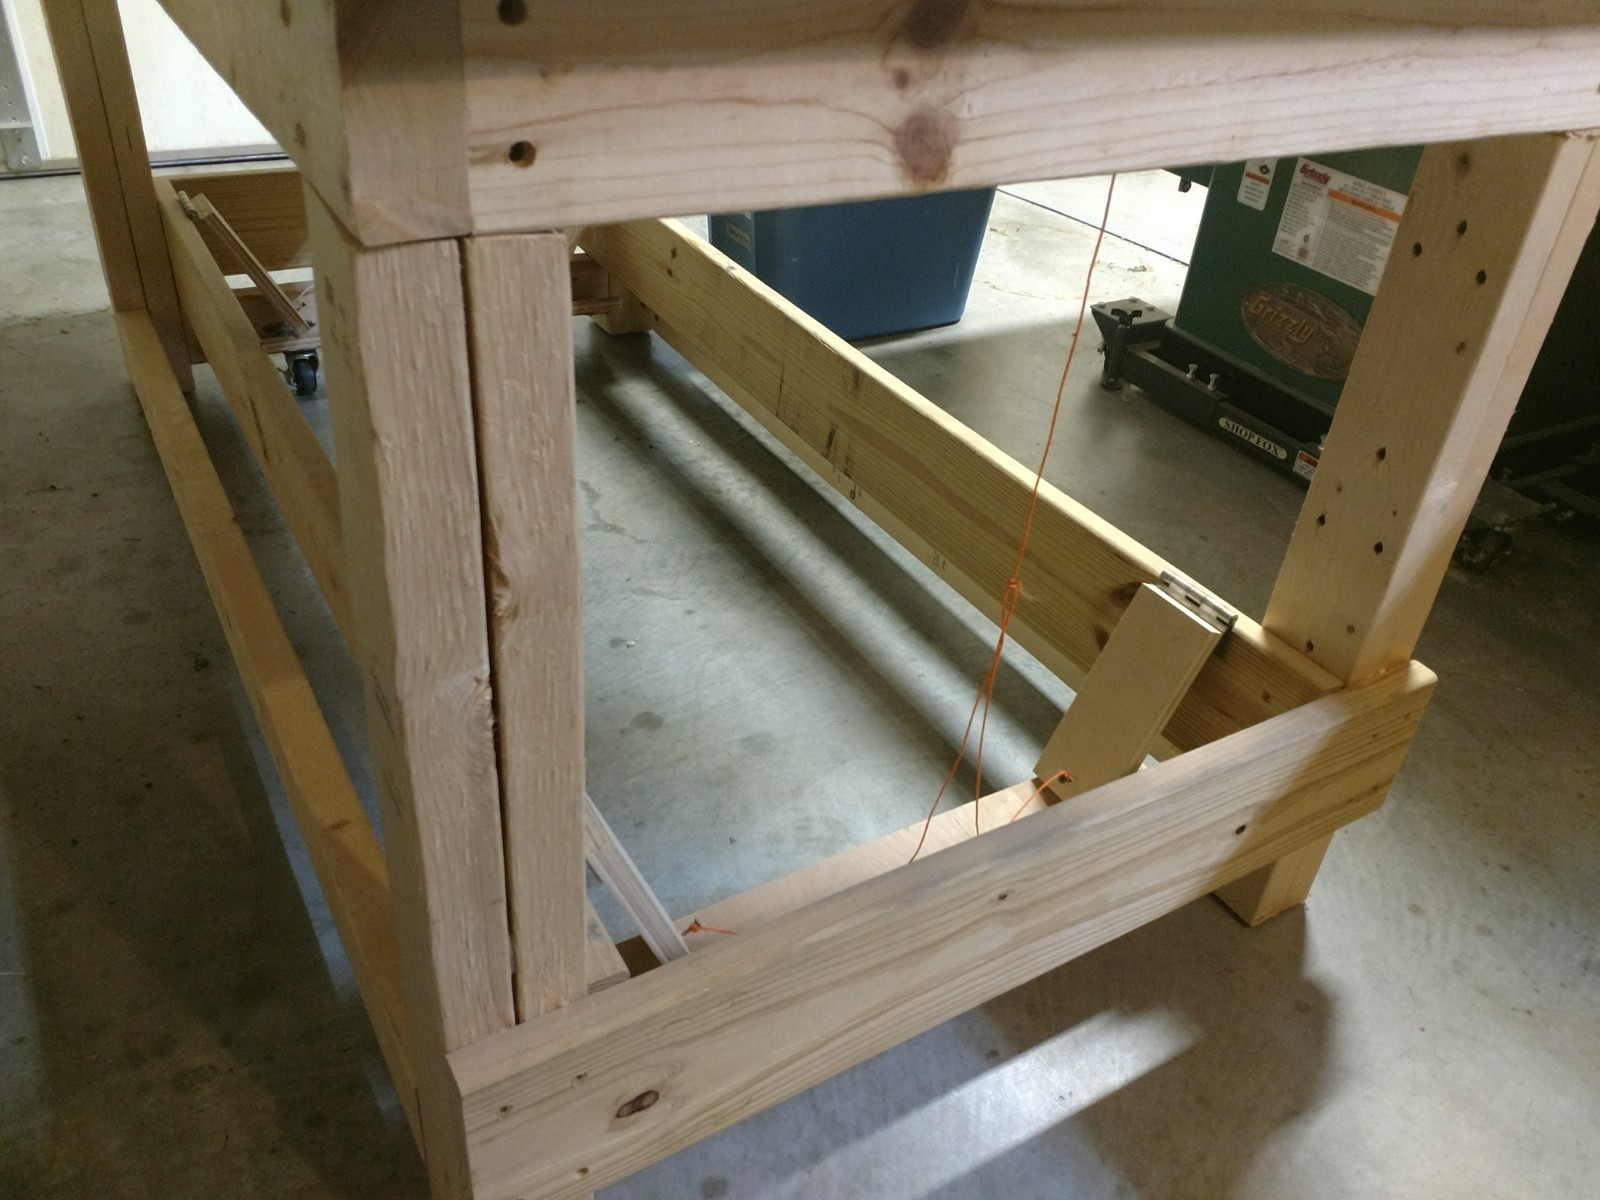 Peachy Torsion Box Workbench For My Woodshop What I Did With Machost Co Dining Chair Design Ideas Machostcouk